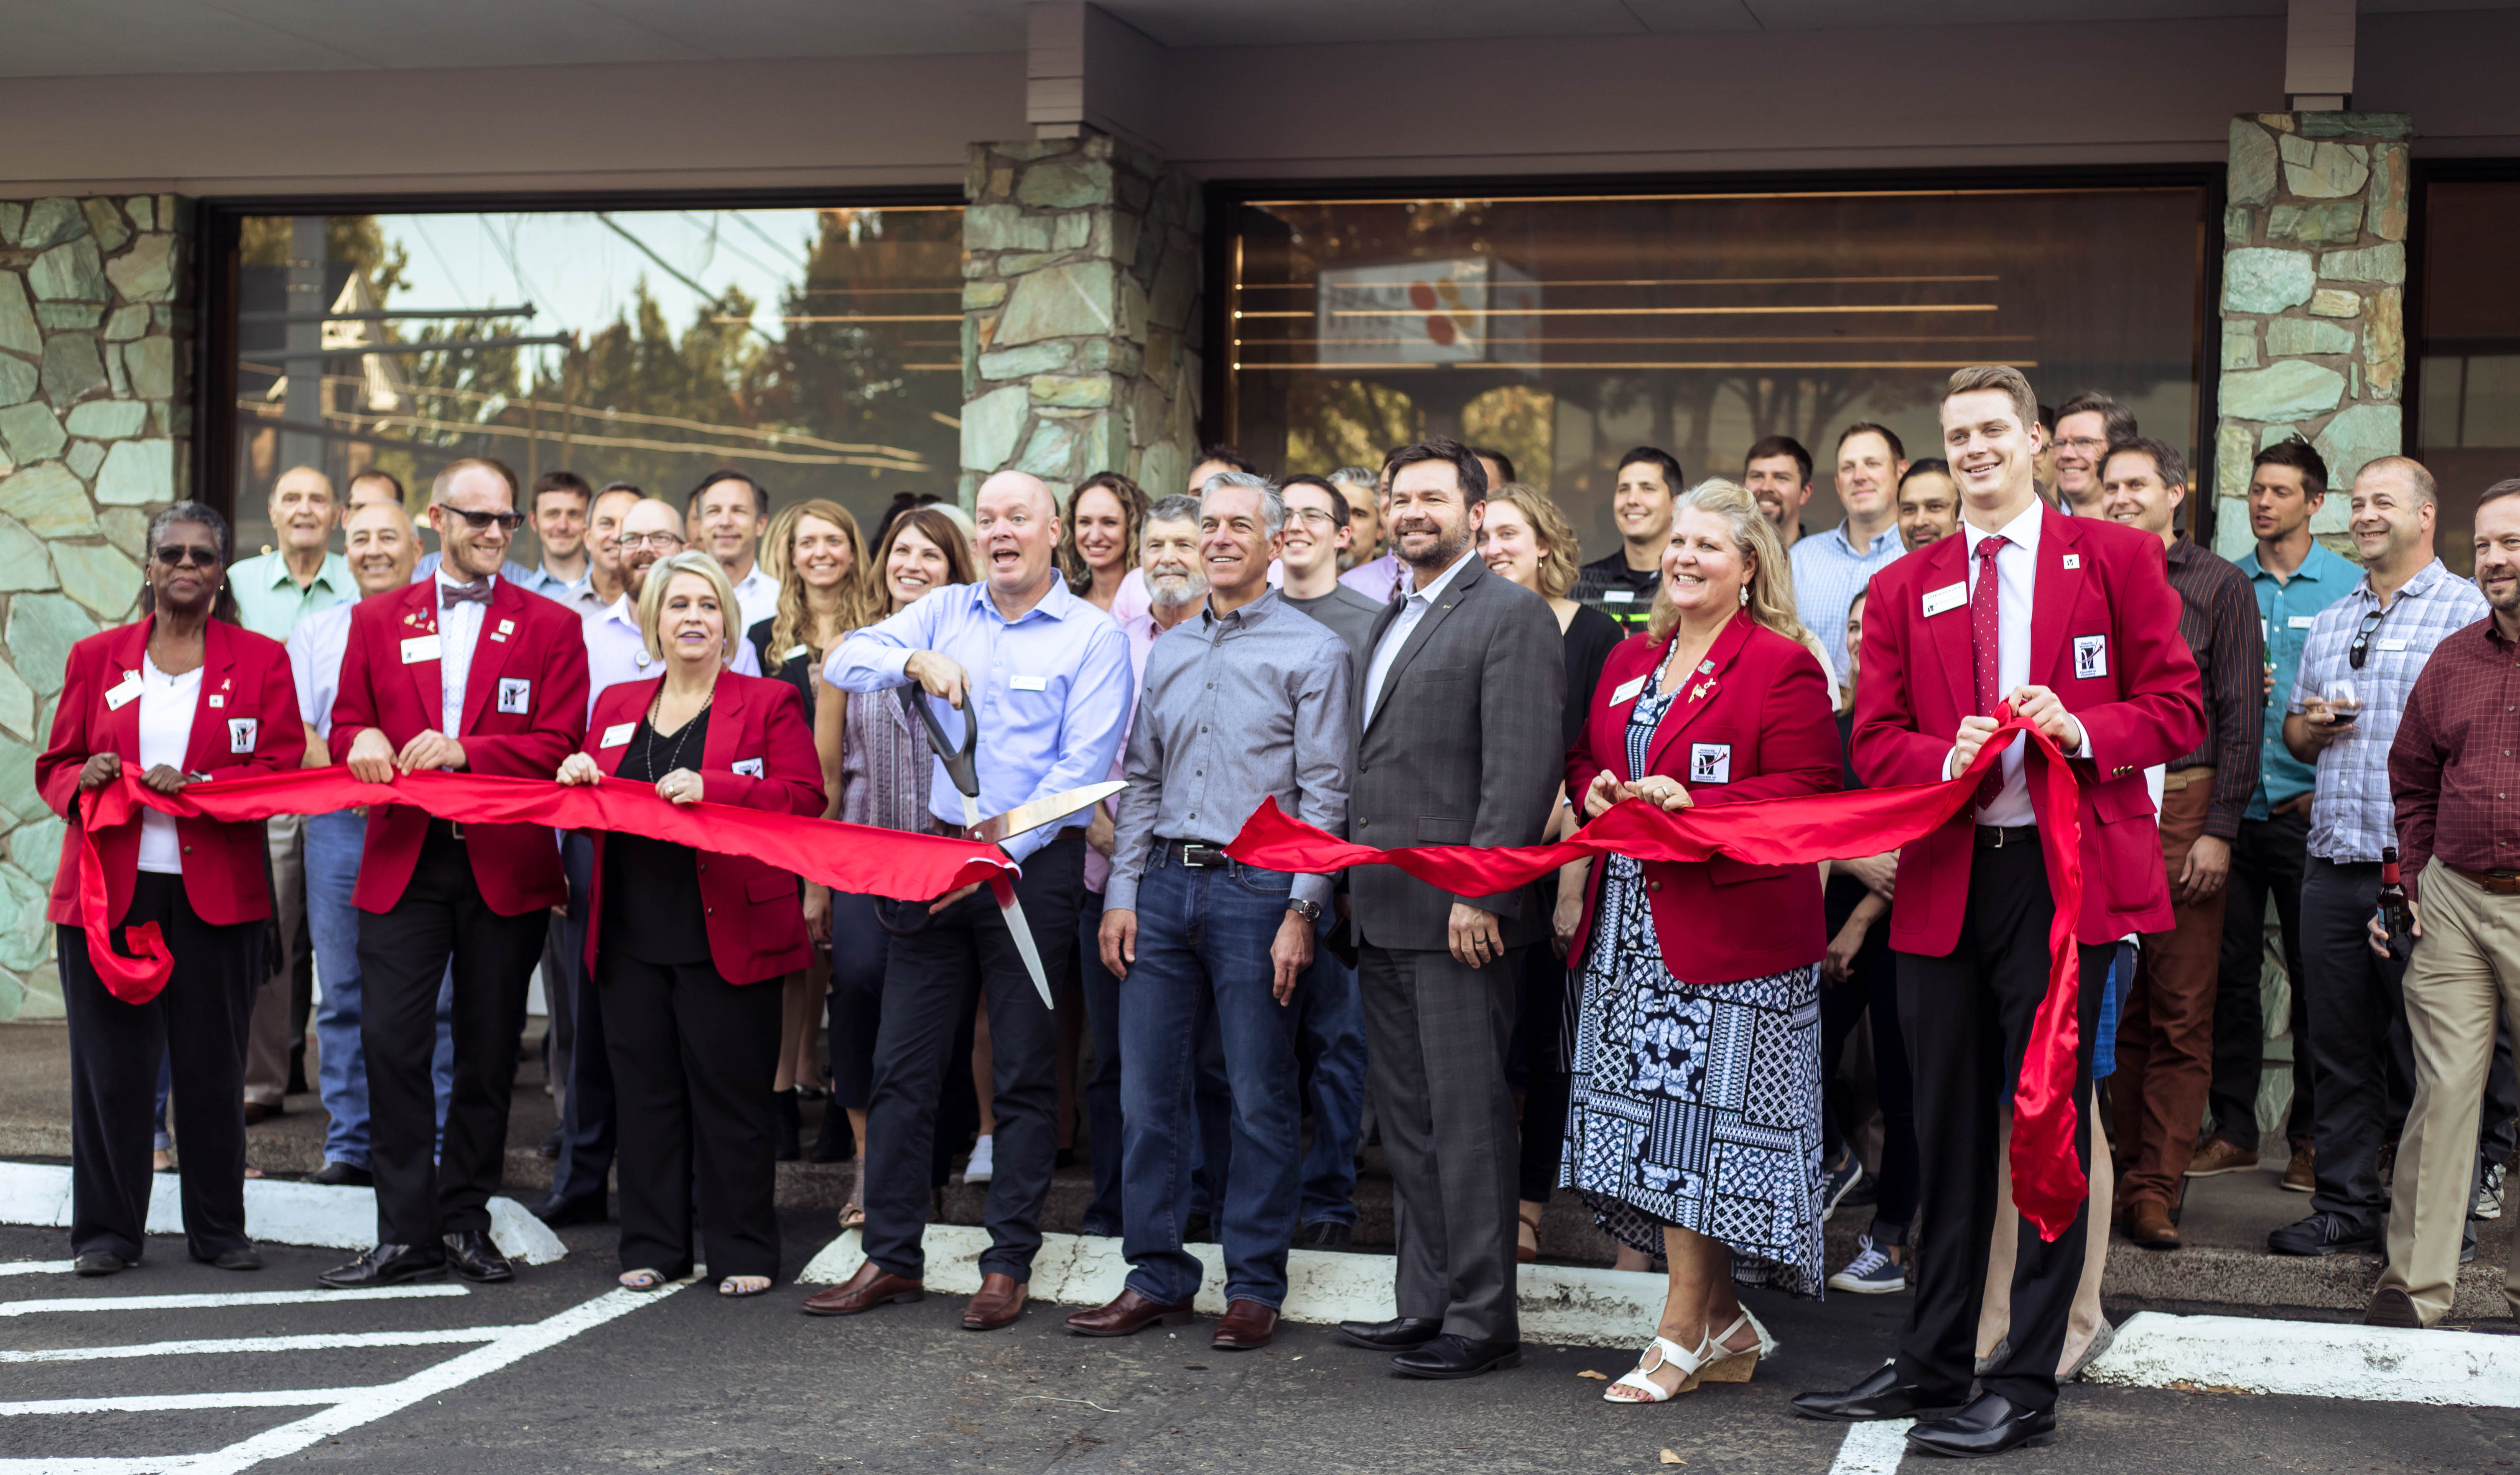 Maul Foster & Alongi's new headquarters ribbon cutting | MFA